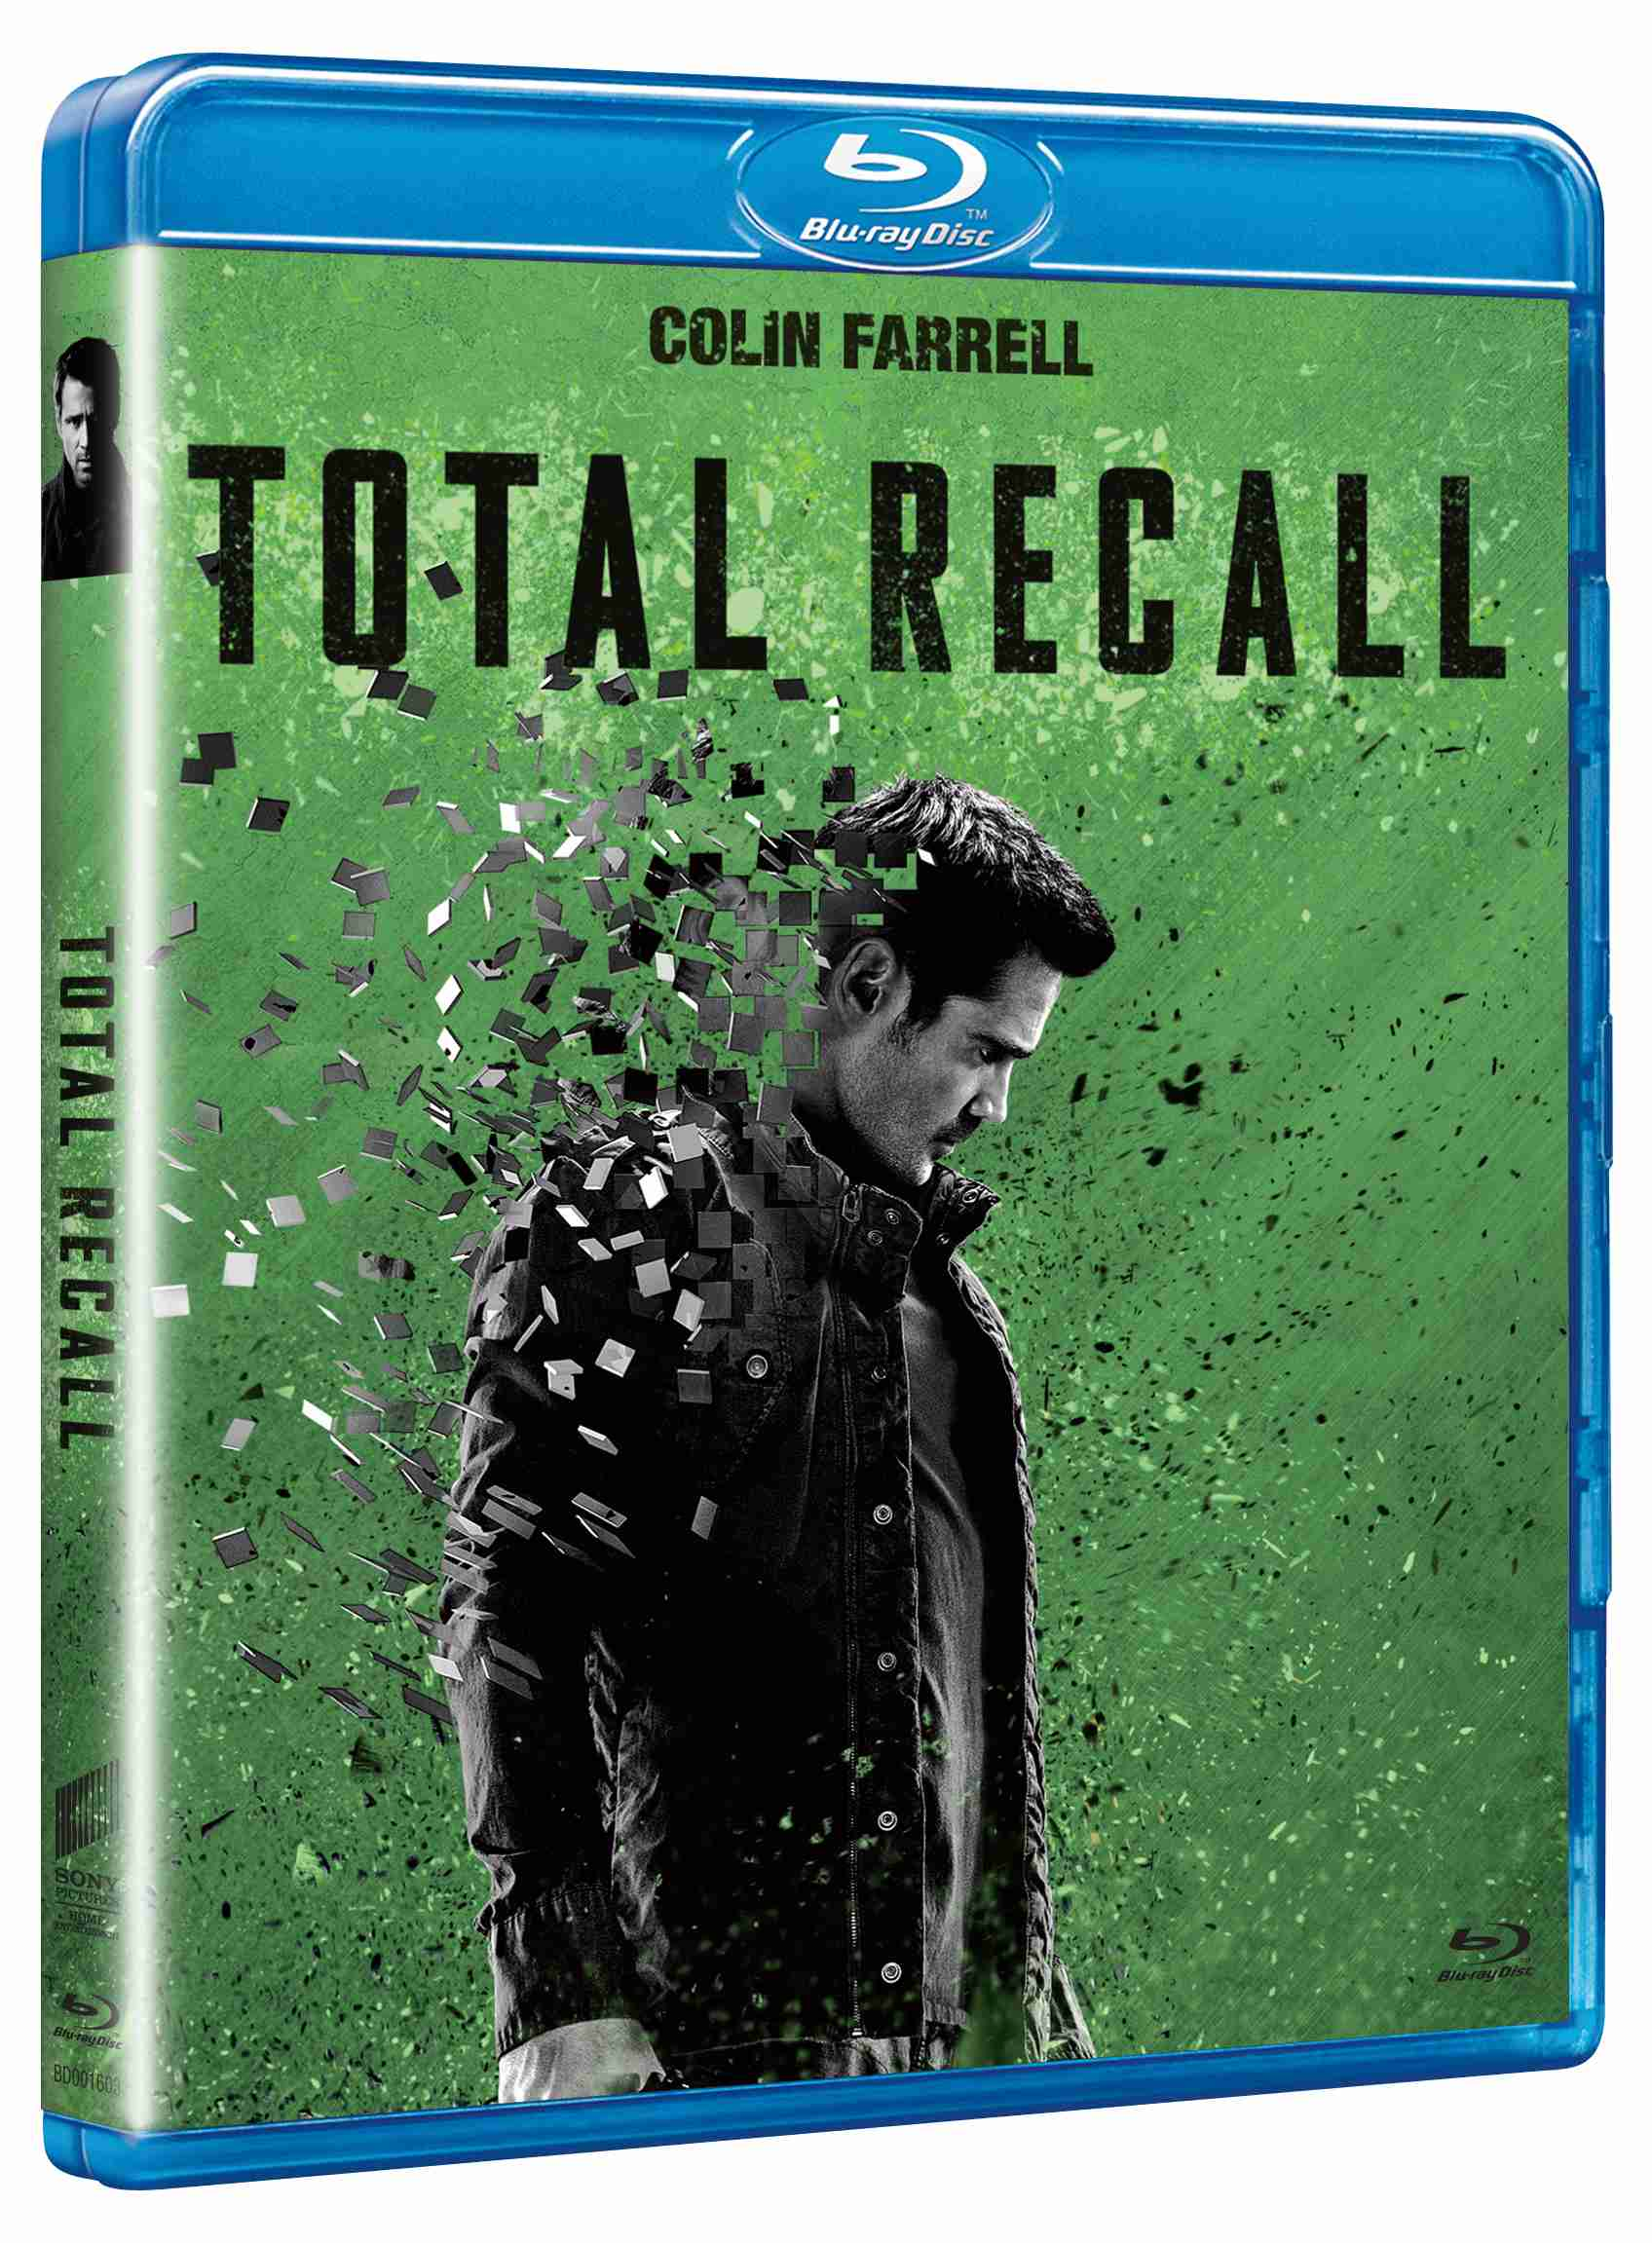 TOTAL RECALL (Big Face) - Blu-ray